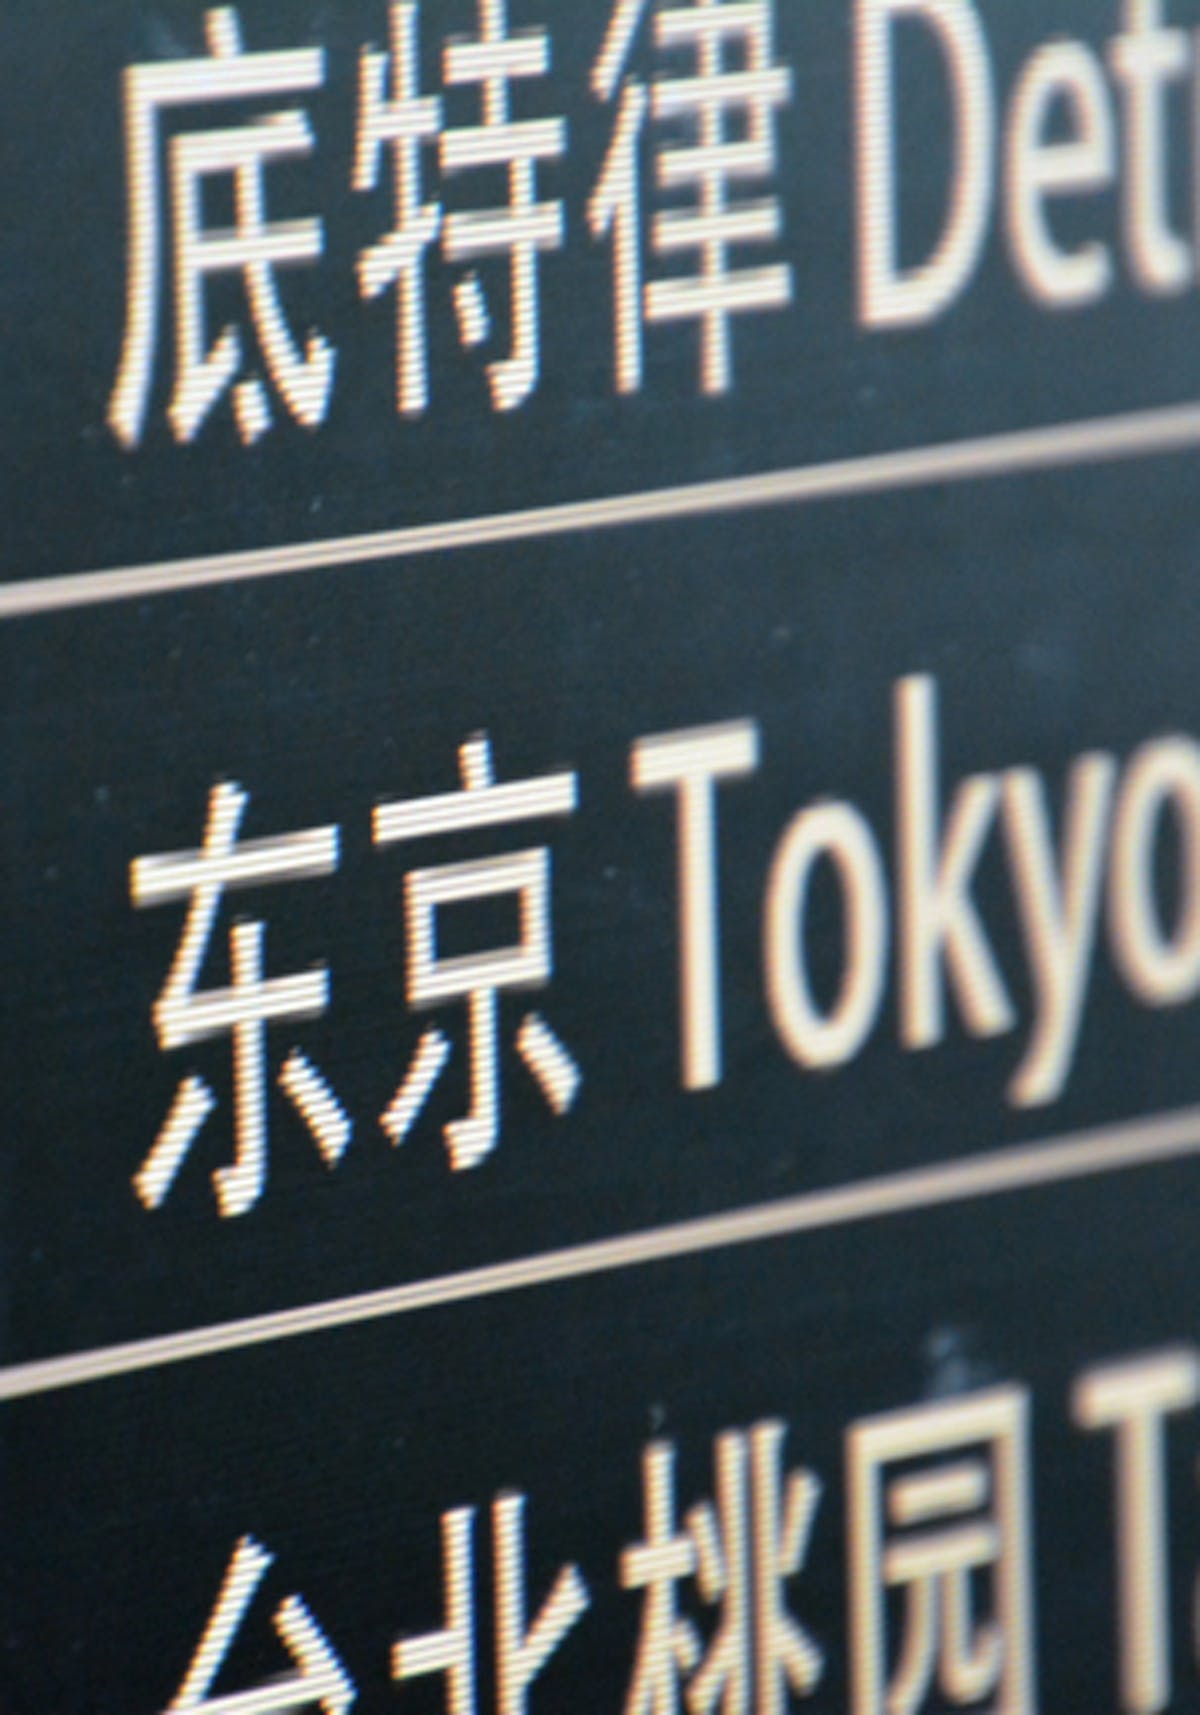 different languages on a board